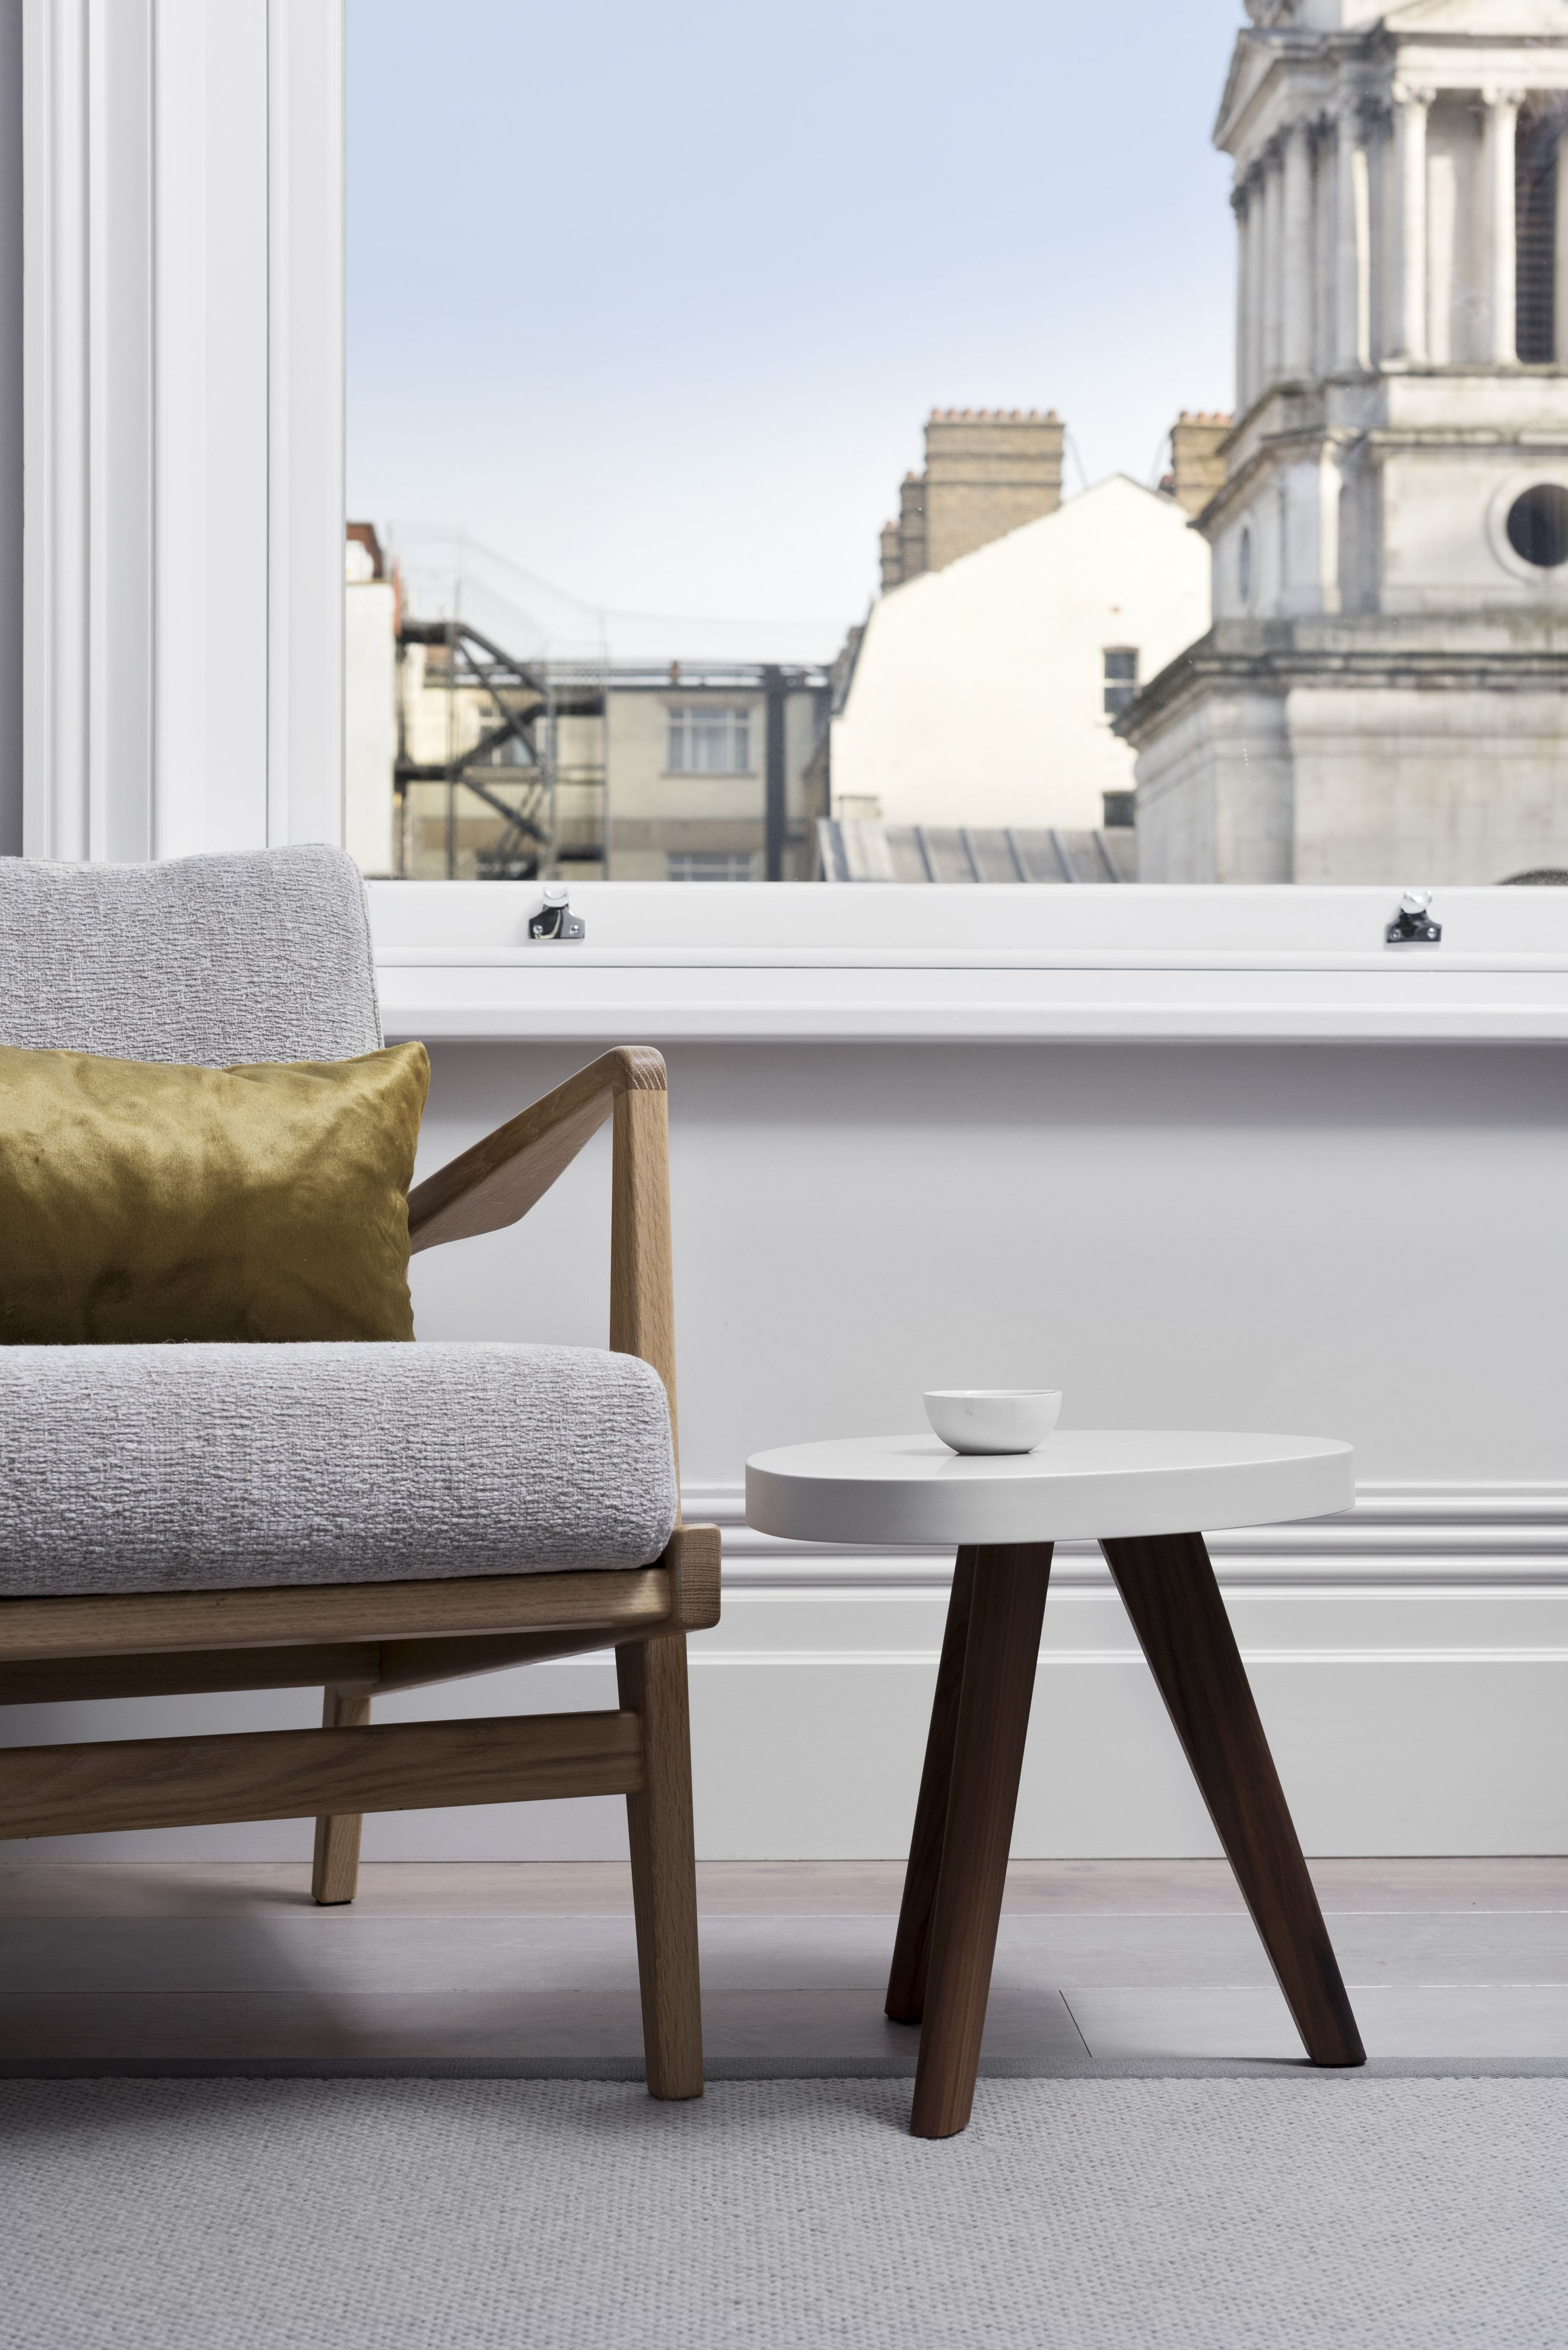 White Rabbit House Ix Is An Apartment Close To London S Tourist Hot Spots From The Modern Kitchen And Bathrooms Trendy Furniture High Ceilings